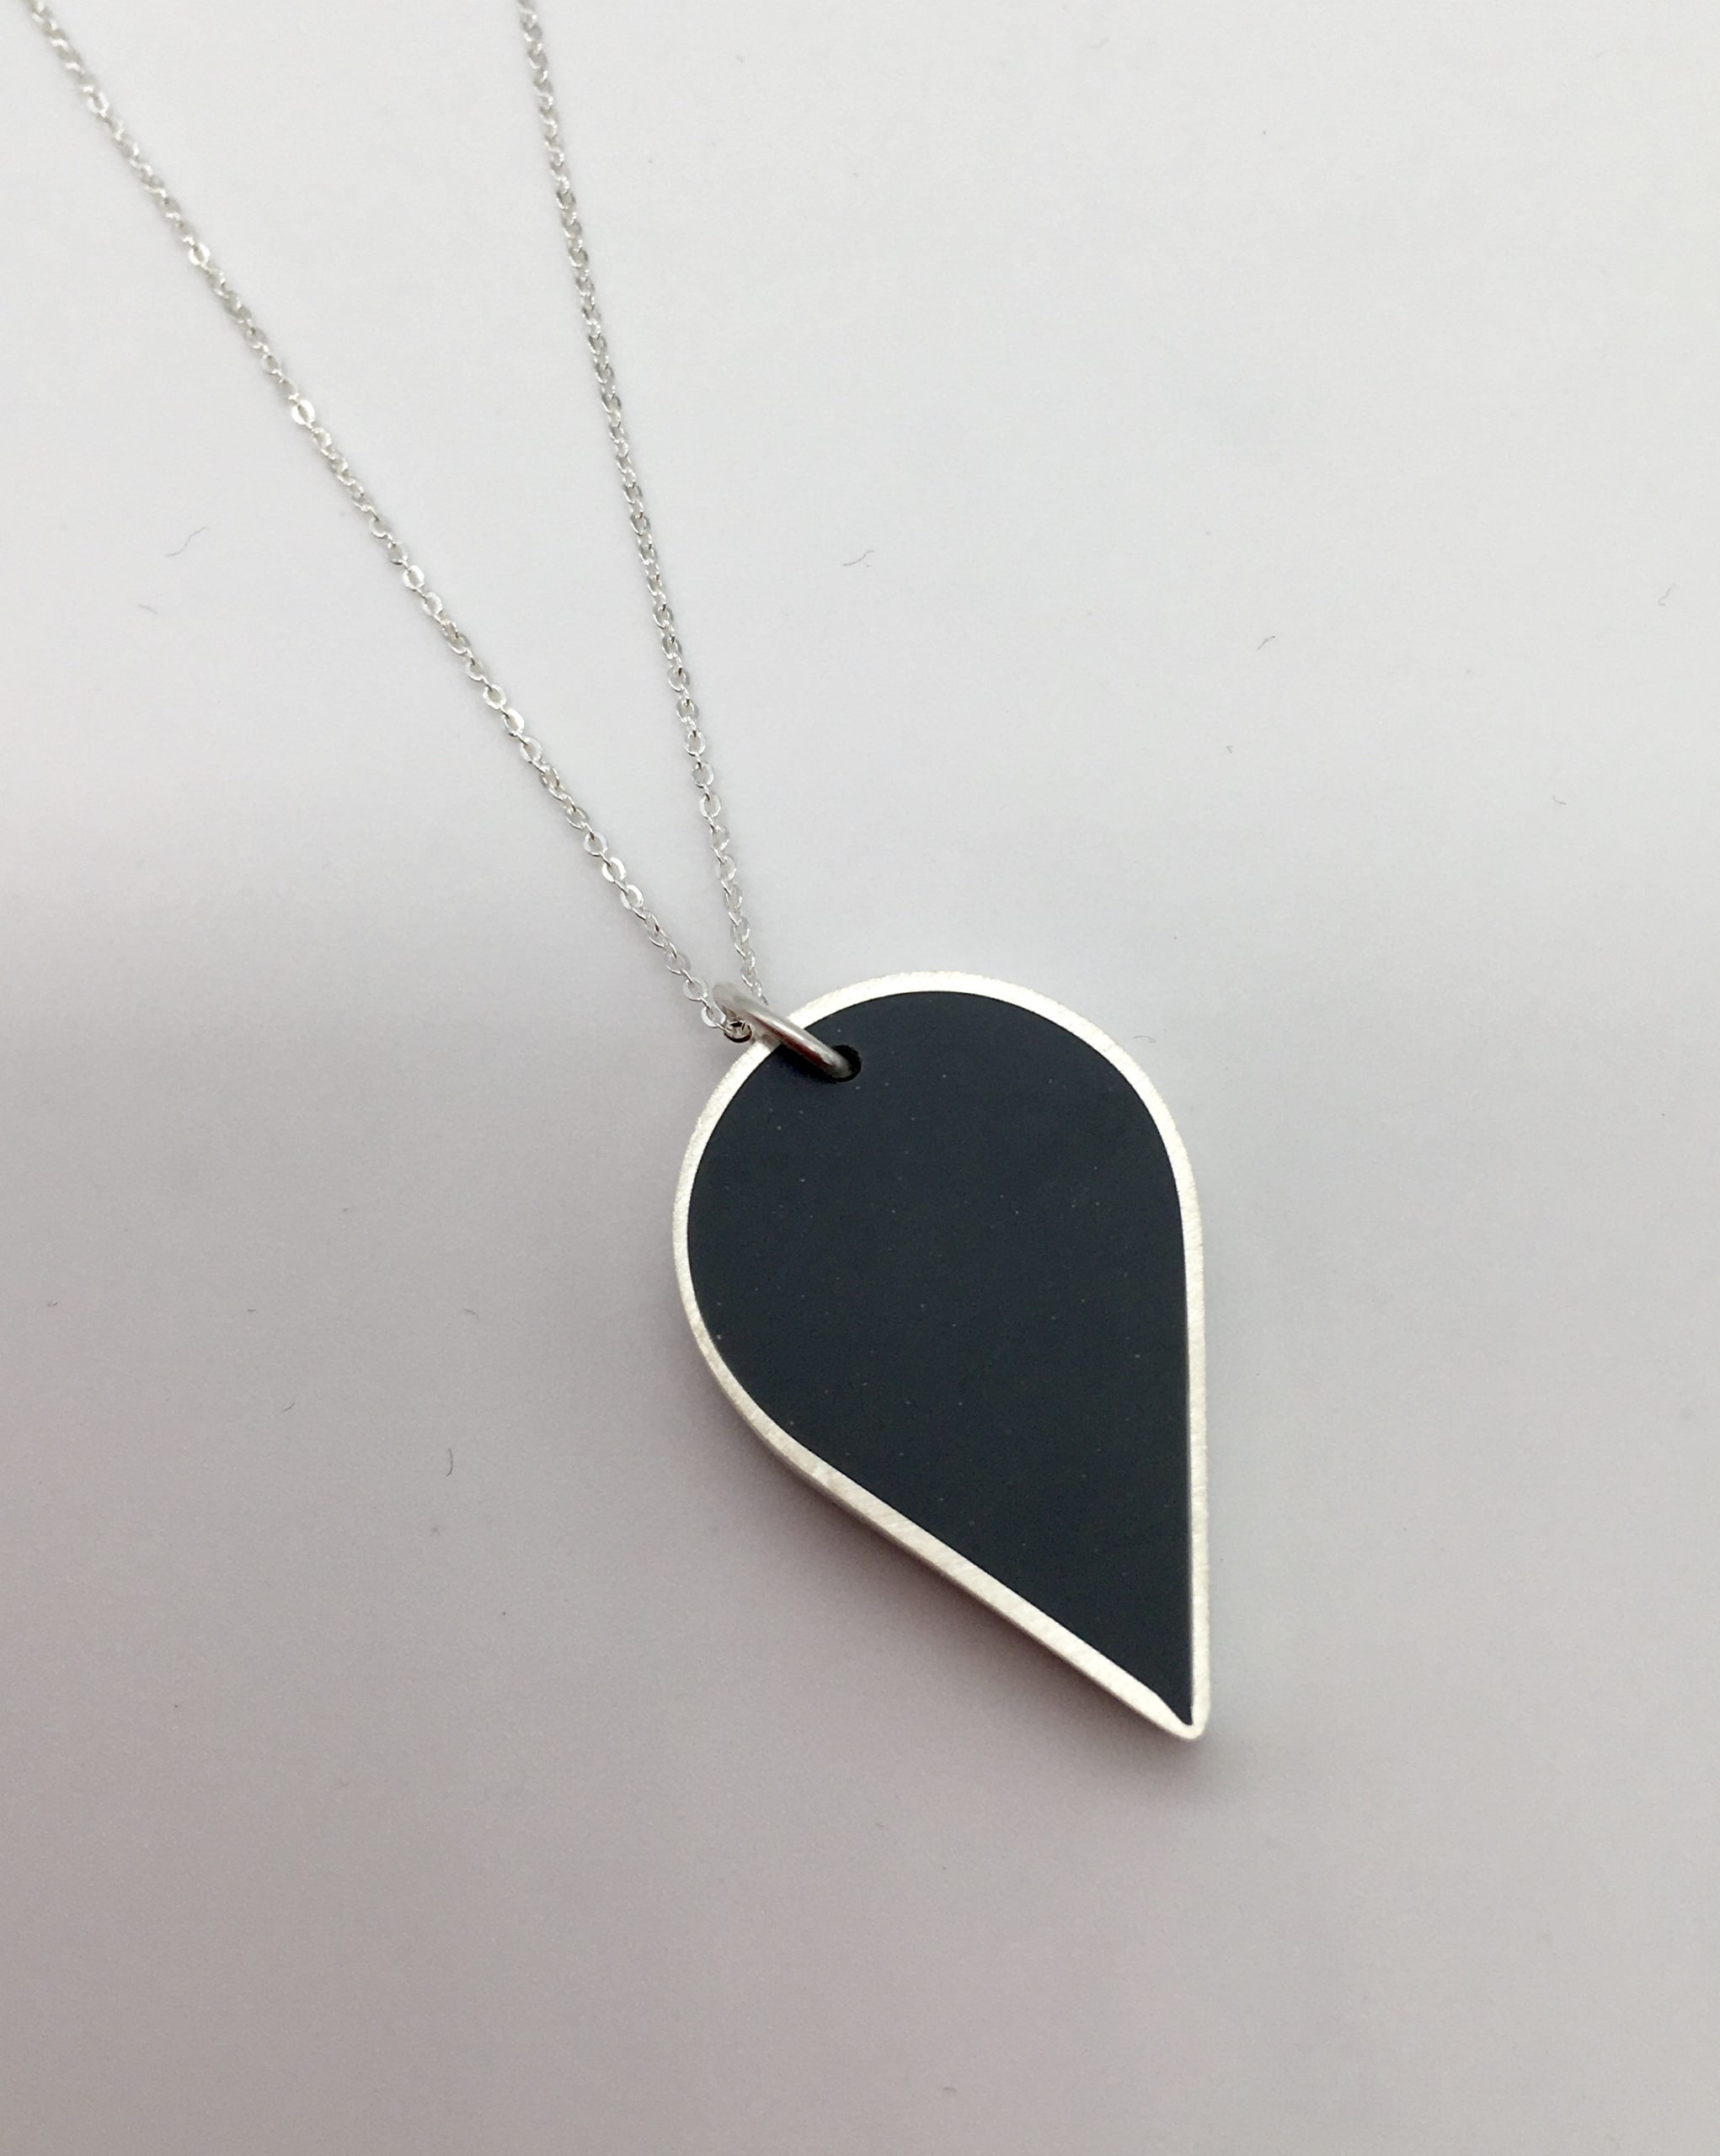 Silver and grey teardrop pendant for sale. Handmade in Devon by silversmith Claire Lowe.